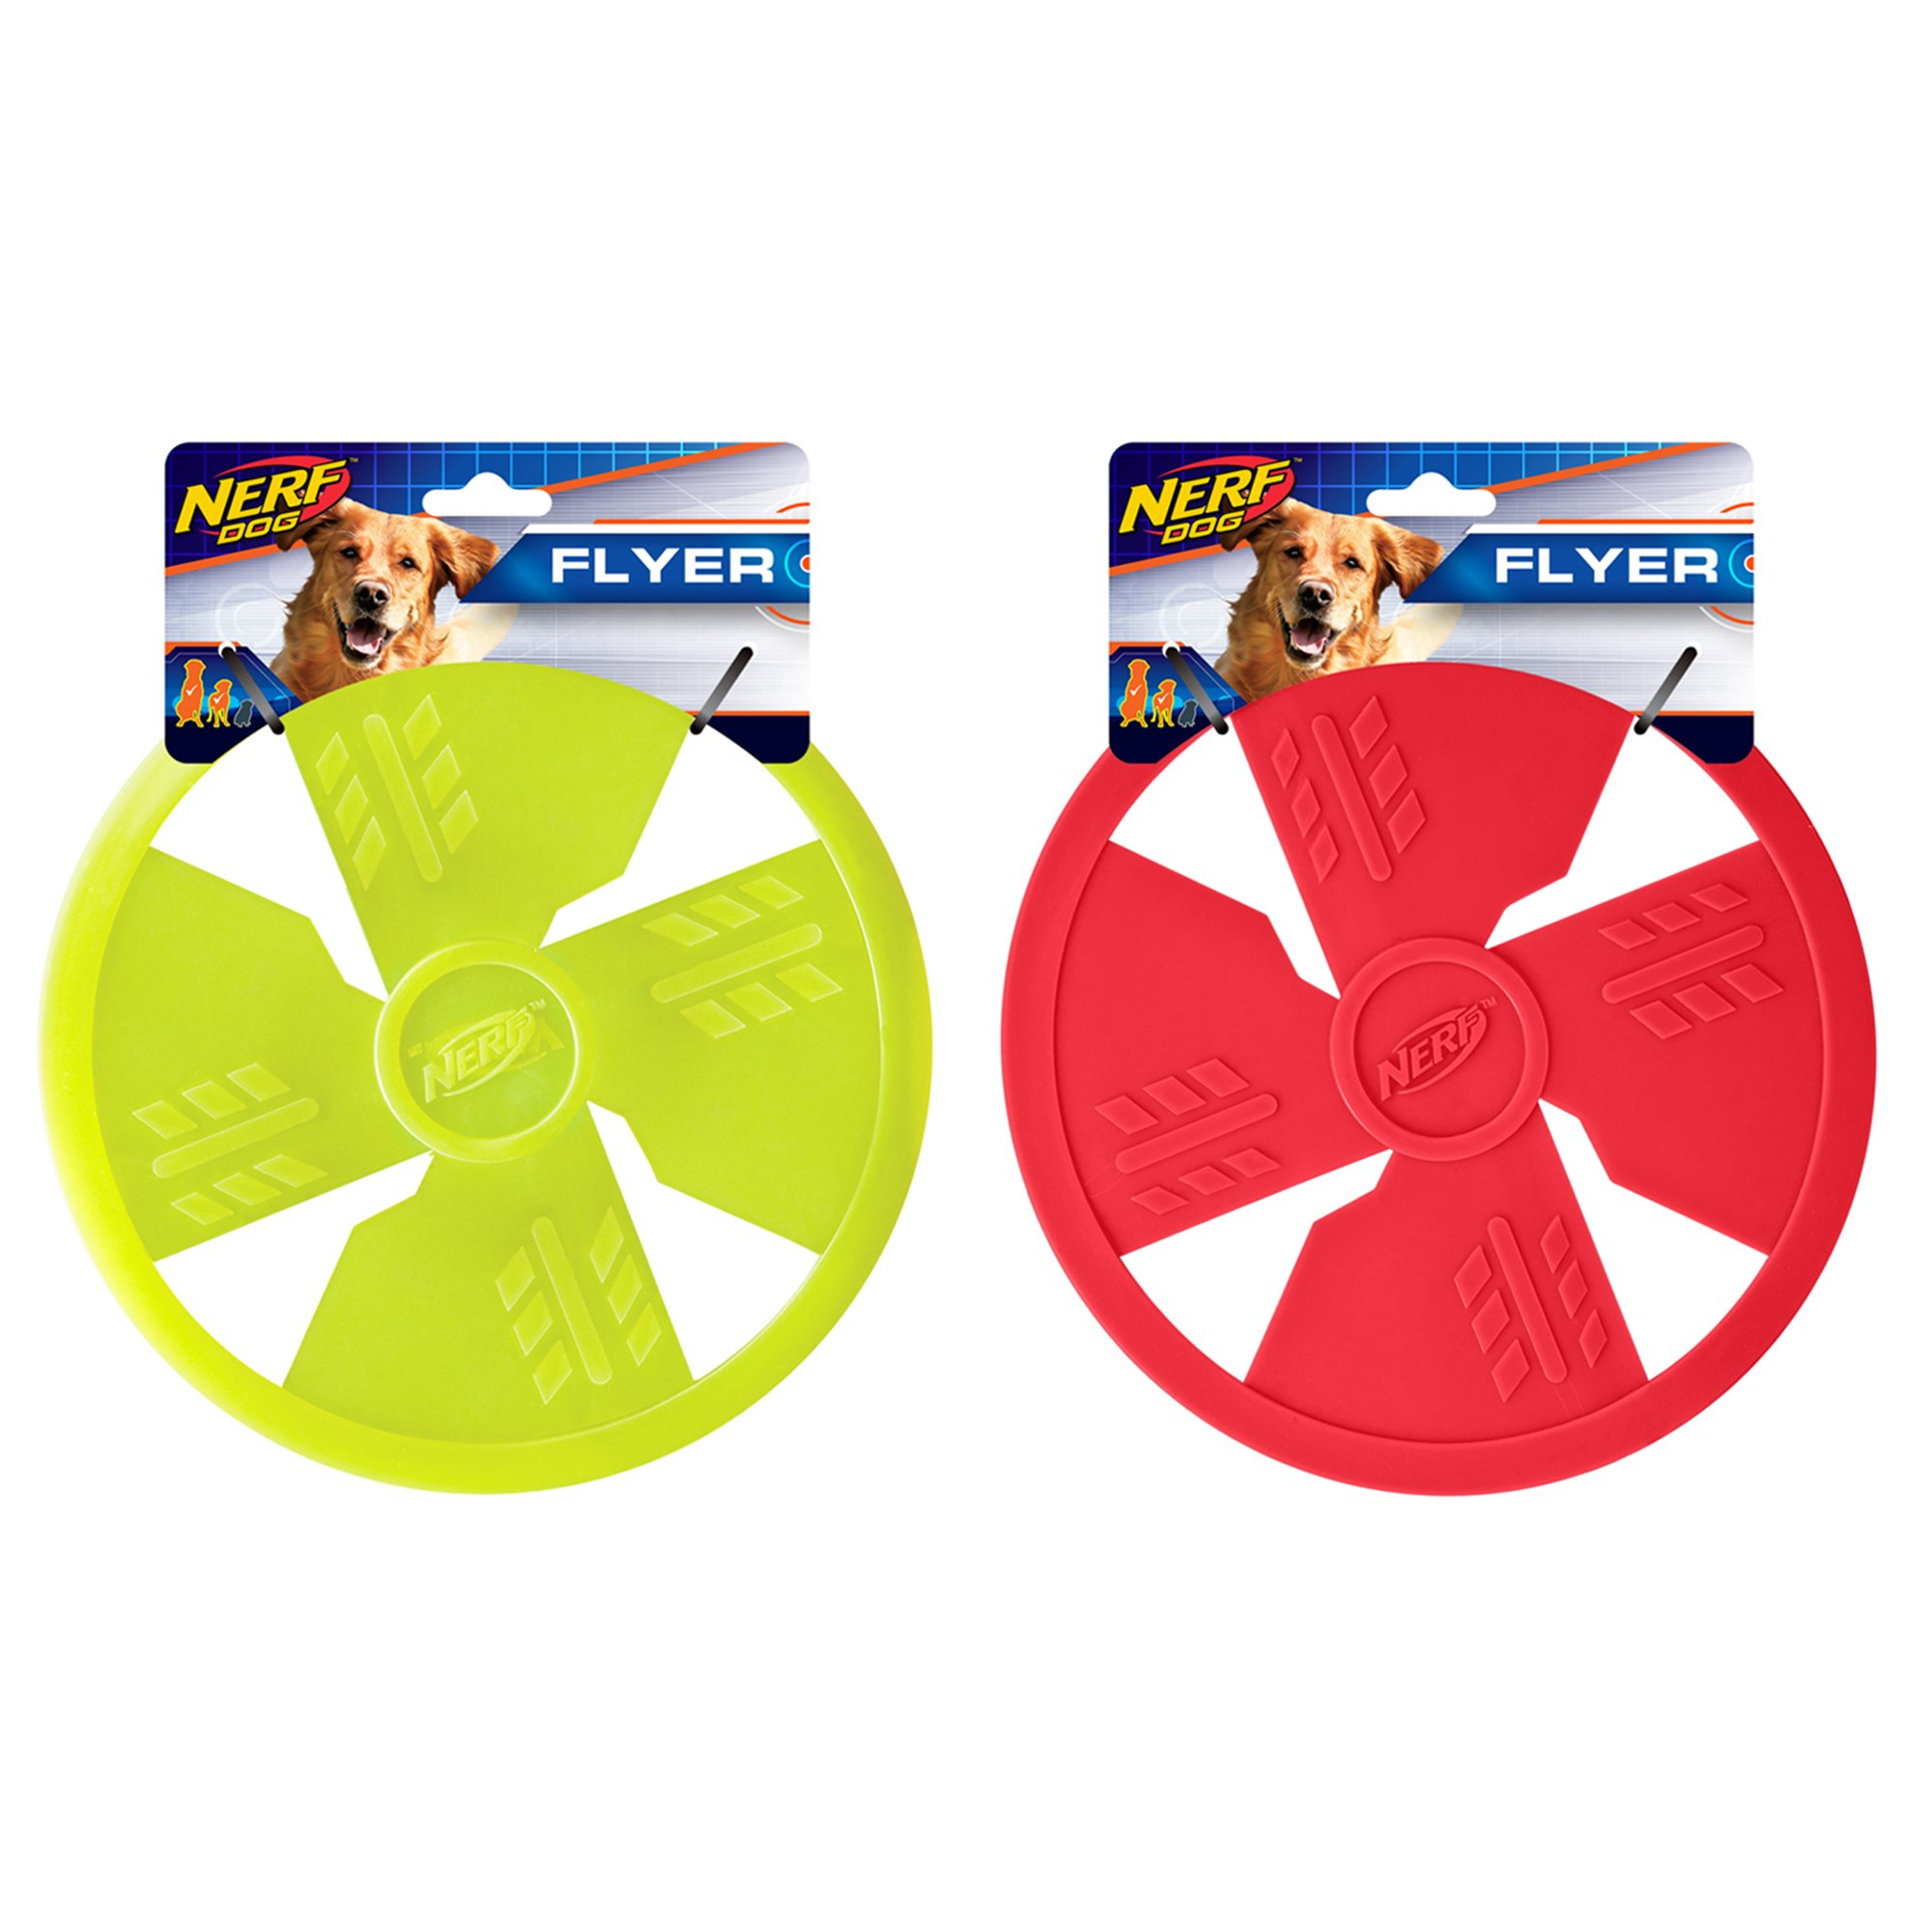 Nerf Dog TPR Float Flyer Flying Disc Dog Toy, Large, (2-Pack), Green and Red